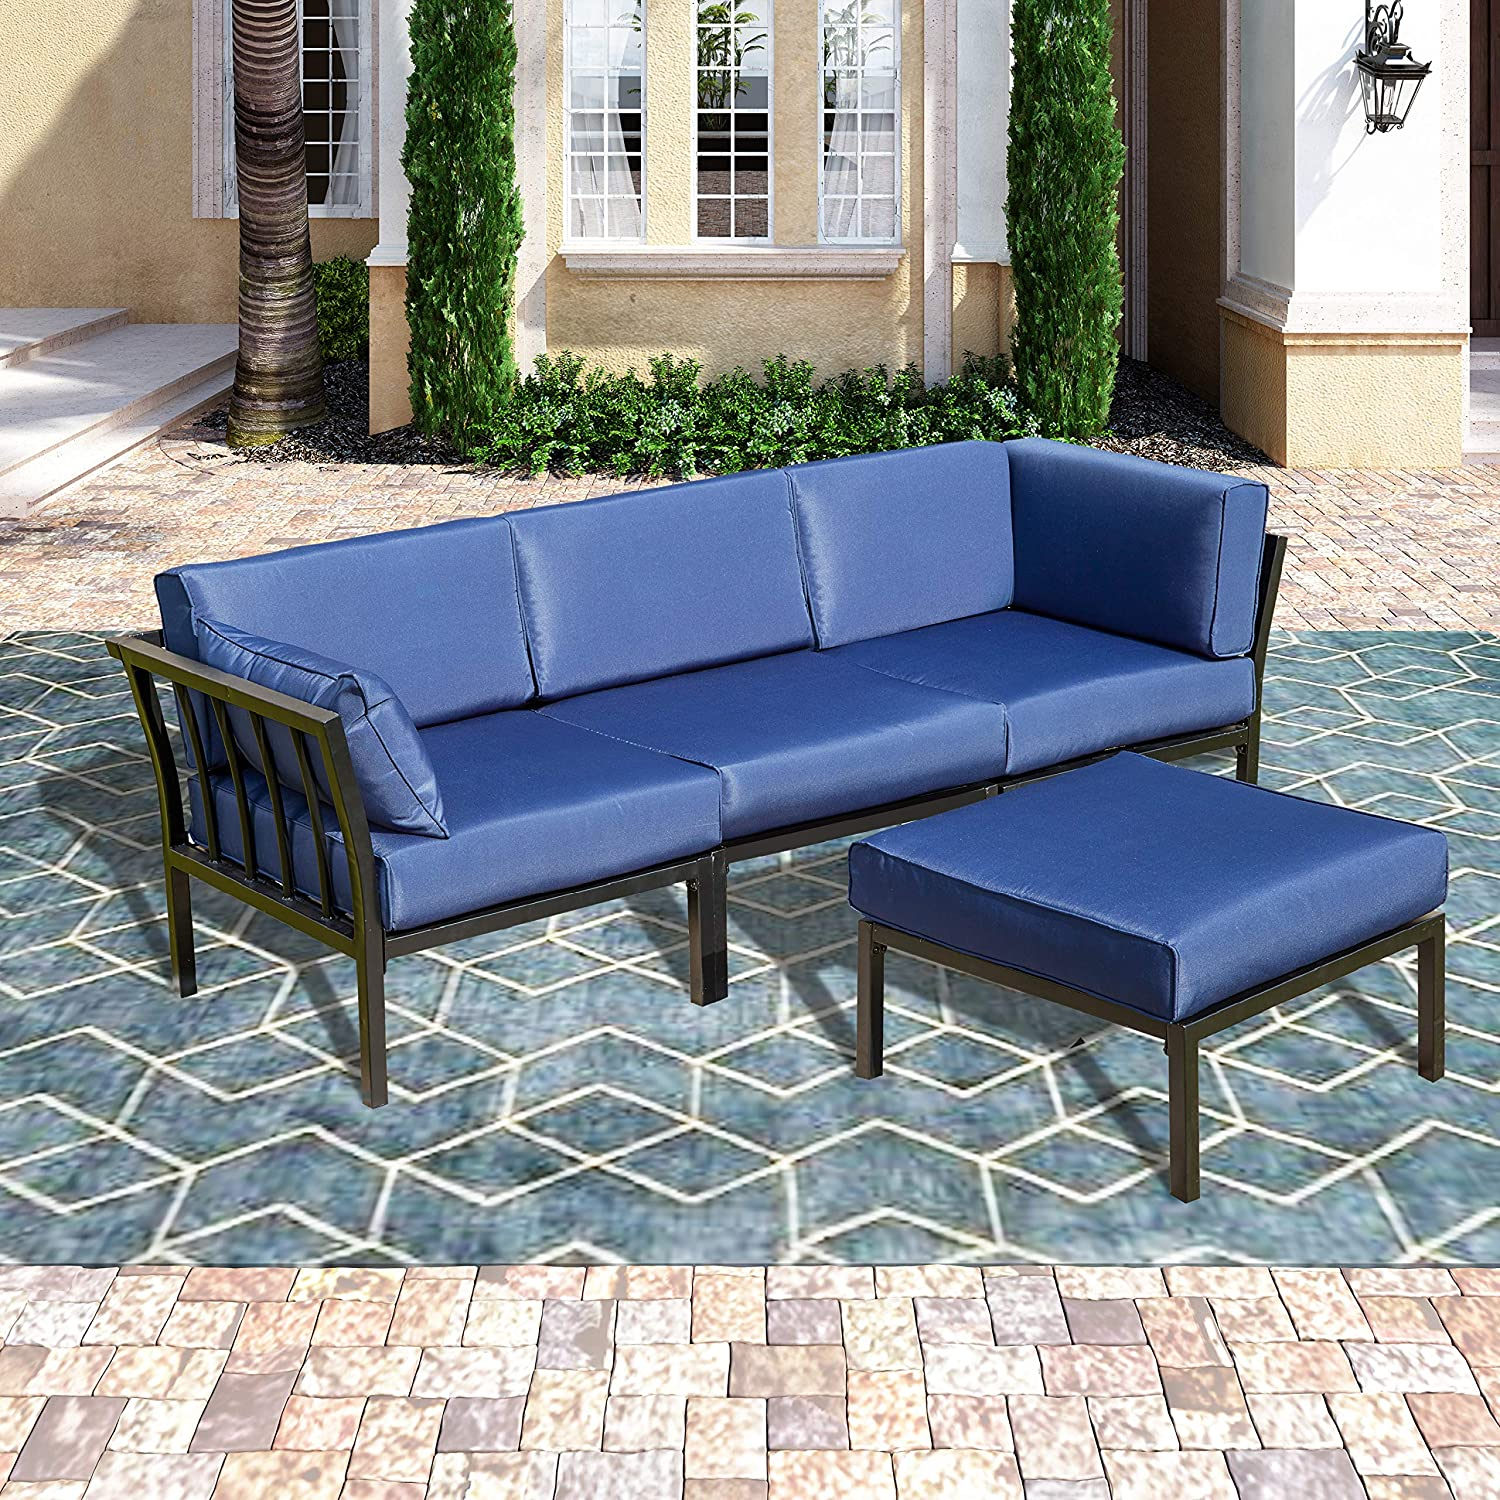 Patio Festival ® Conversation Set,Outdoor Metal Furniture 4 Seats All-Weather Sectional Sofa Set with Cushioned for Garden,Lawn,Pool